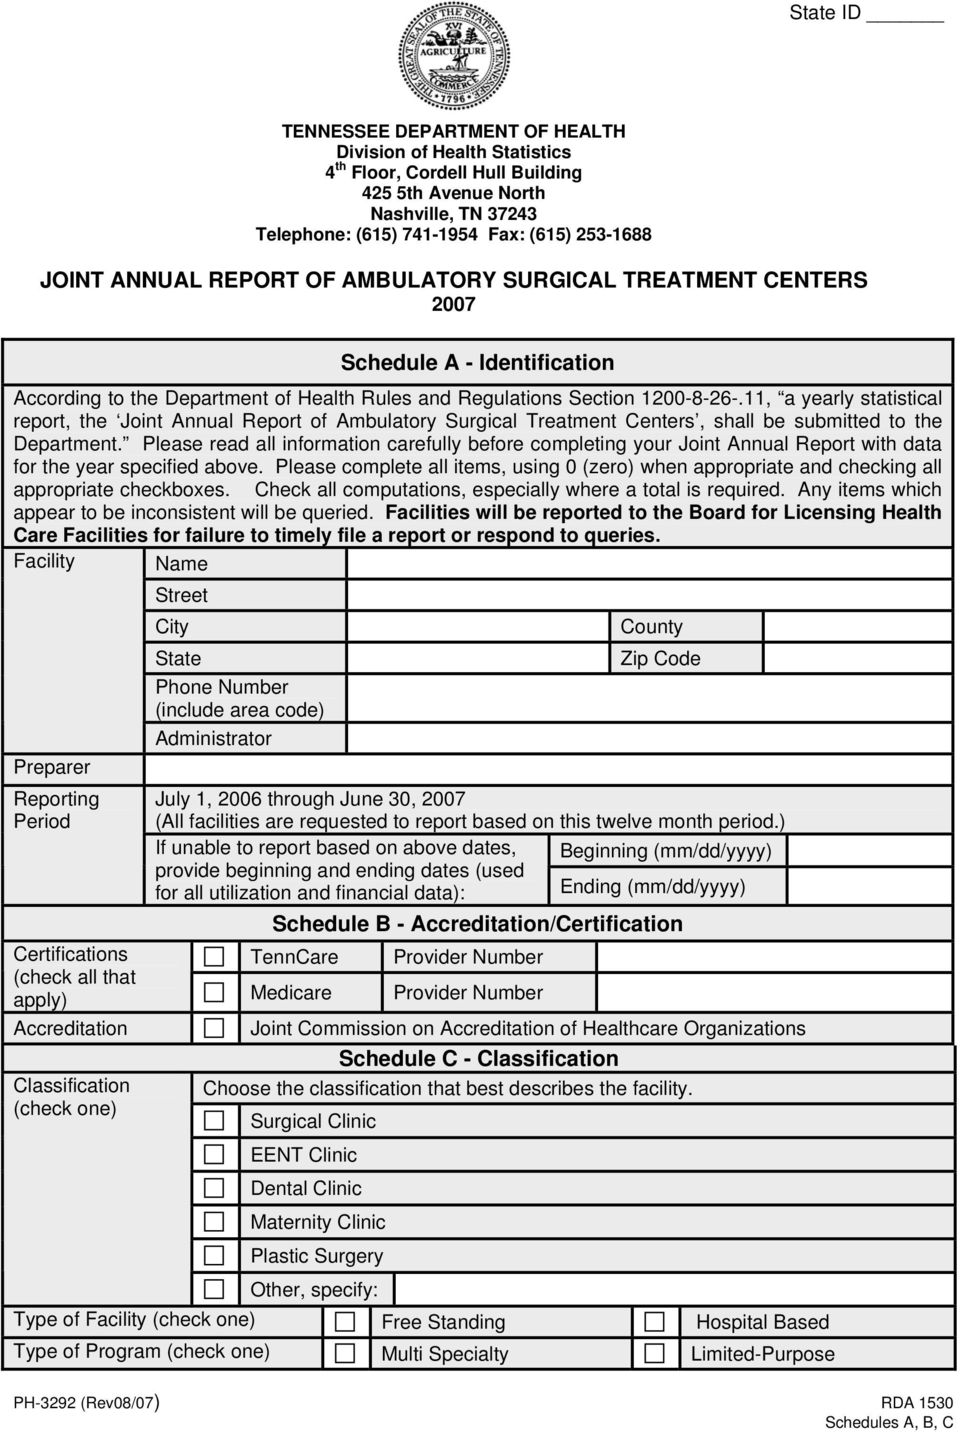 11, a yearly statistical report, the Joint Annual Report of Ambulatory Surgical Treatment Centers, shall be submitted to the Department.